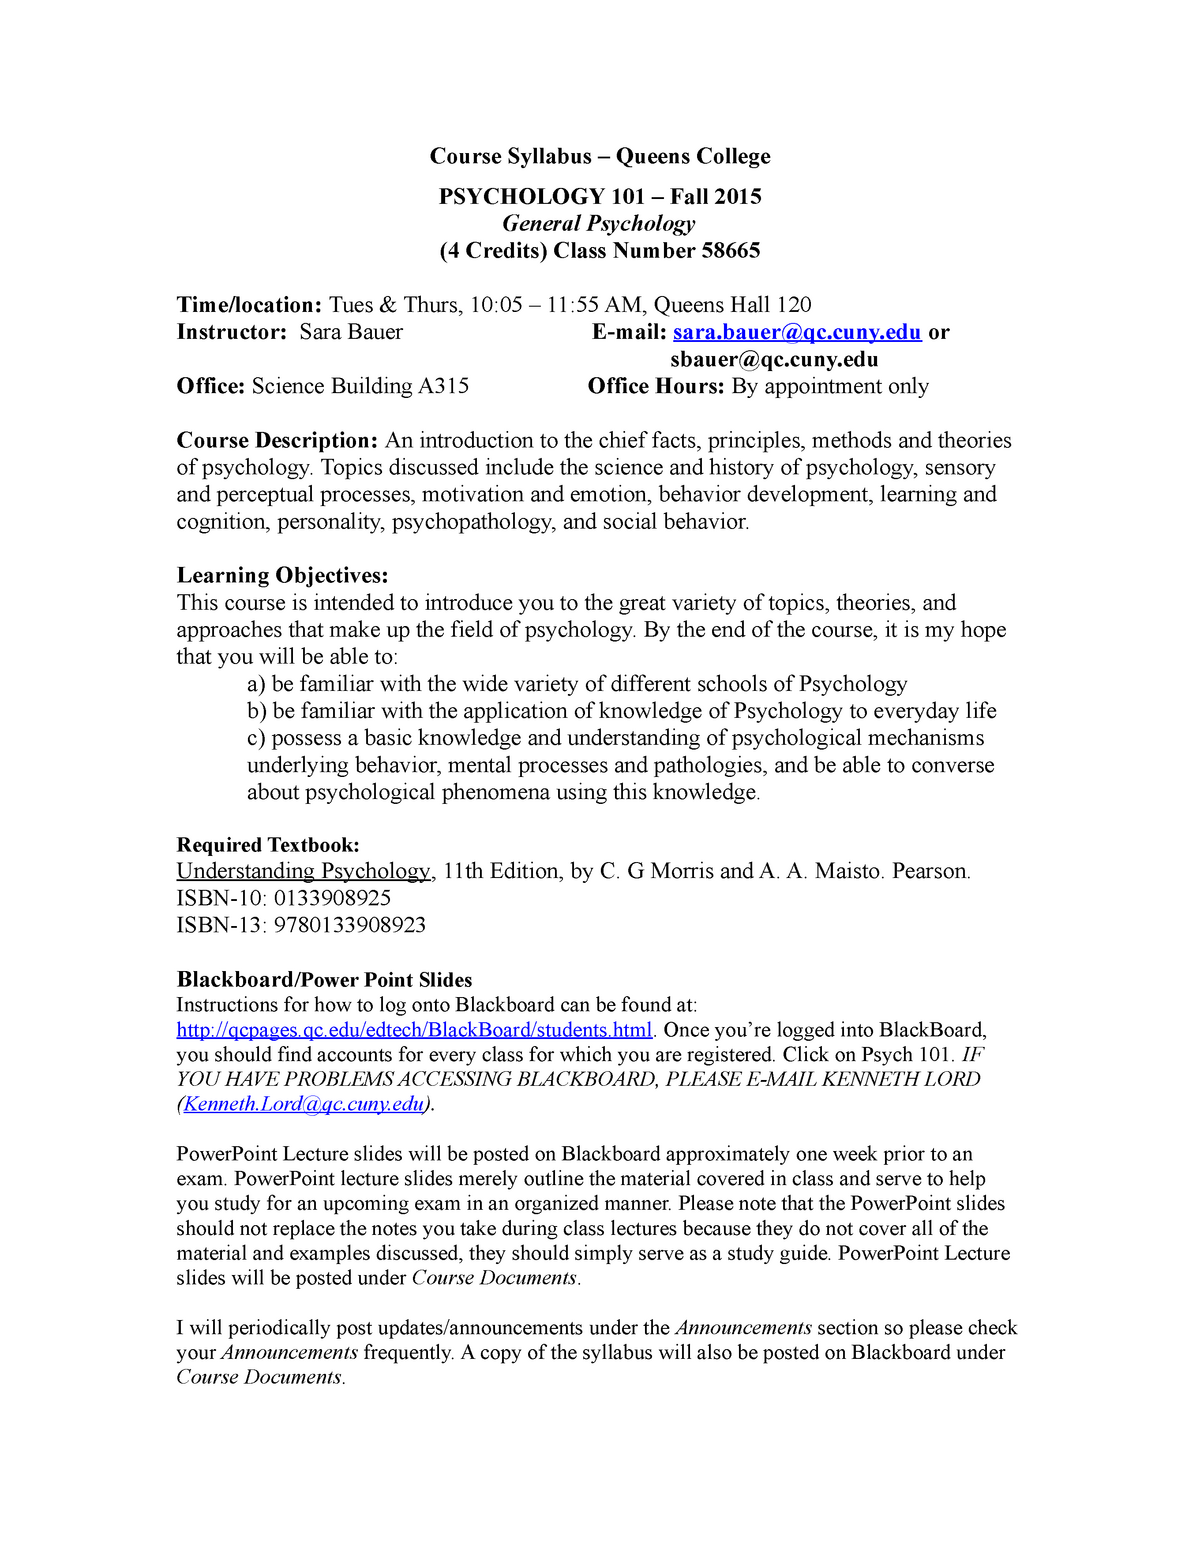 Psych 101 Syllabus Fall 2015 - revised - PSYCH 101: General